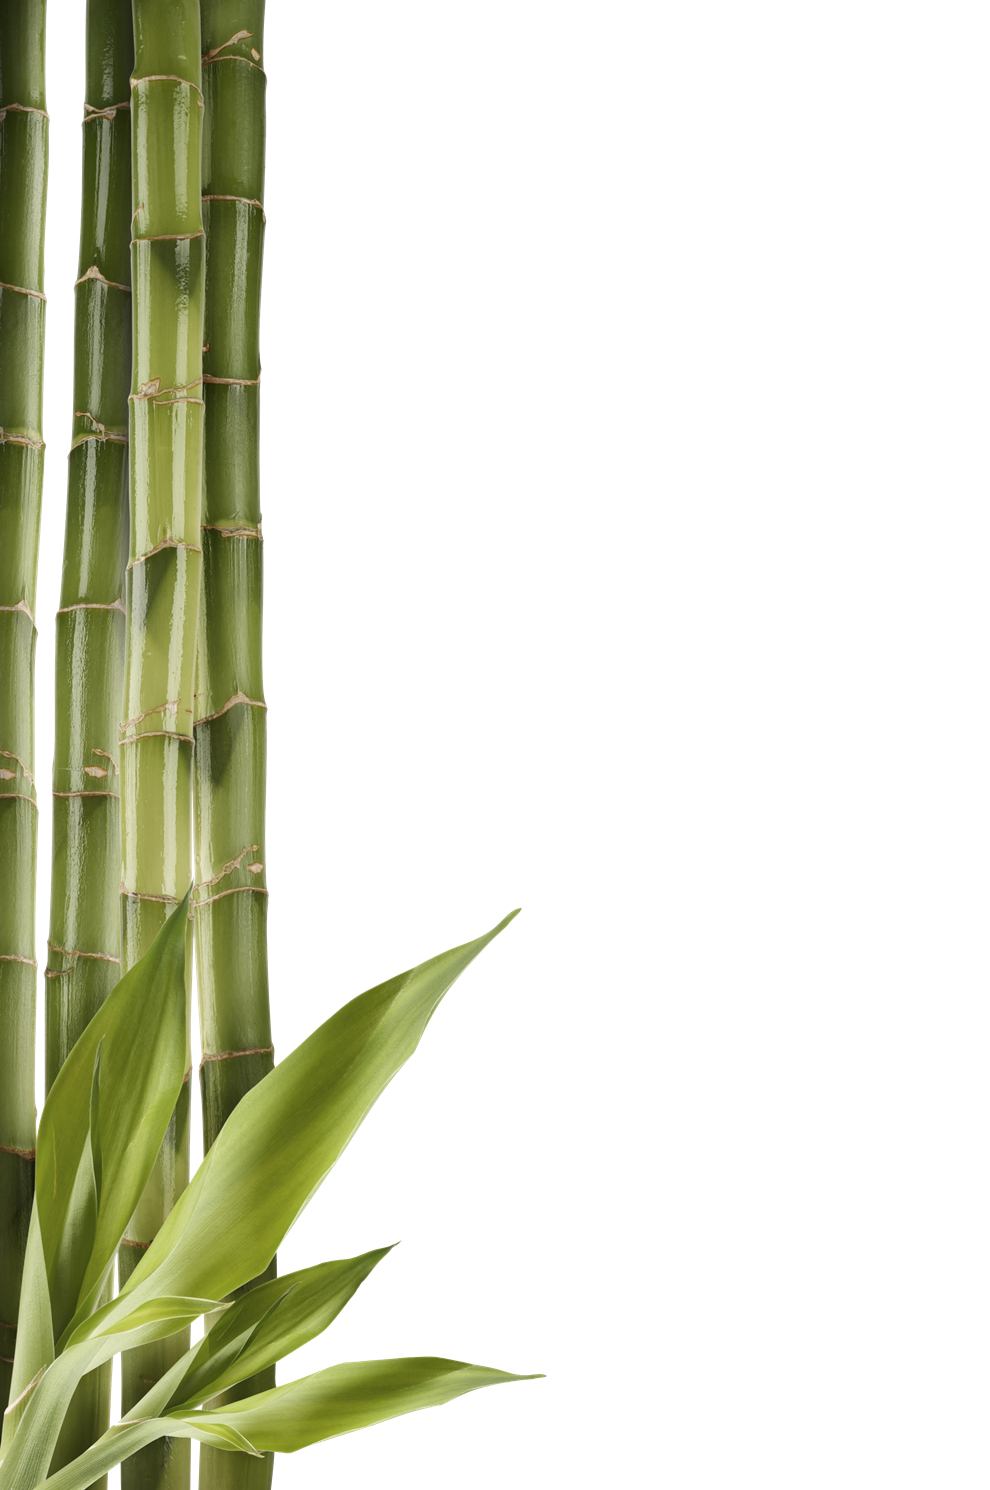 Bamboo Clipart PNG Image